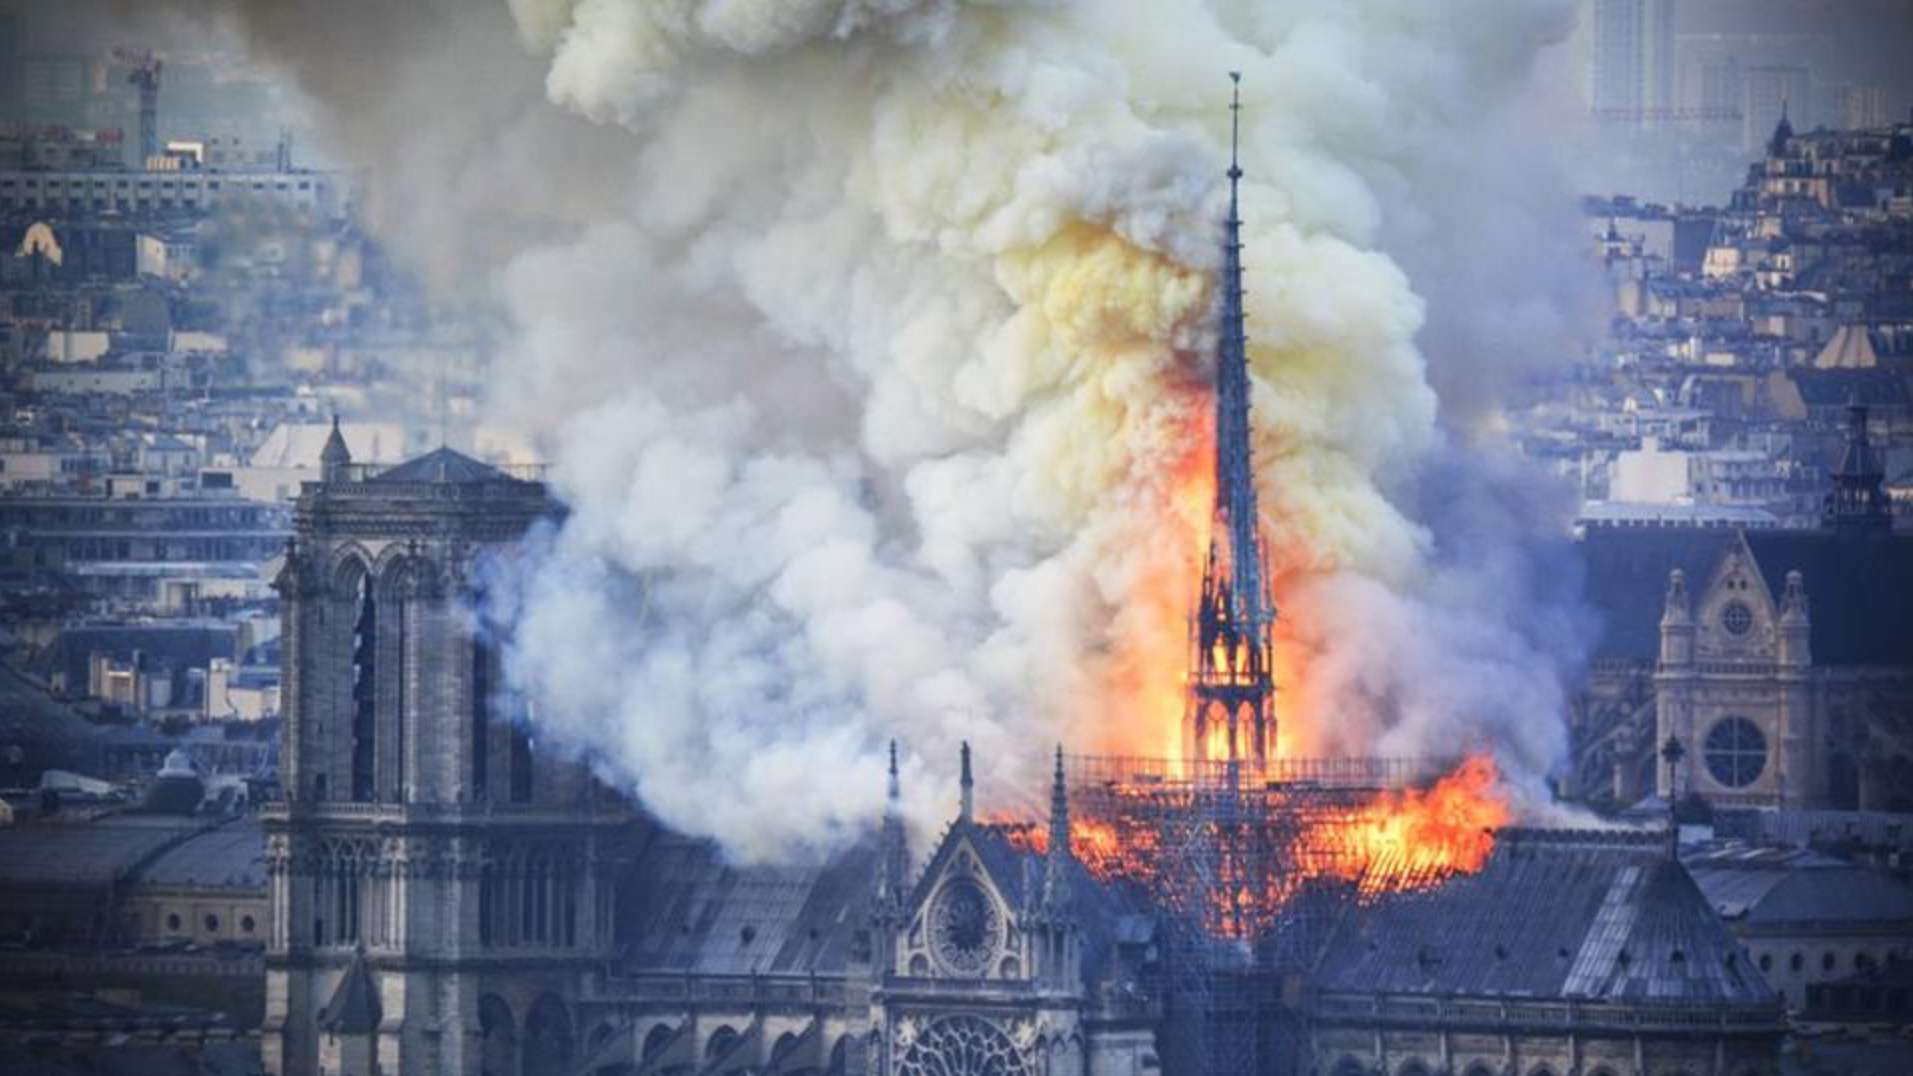 DJI drones helped firefighters put out Notre Dame inferno